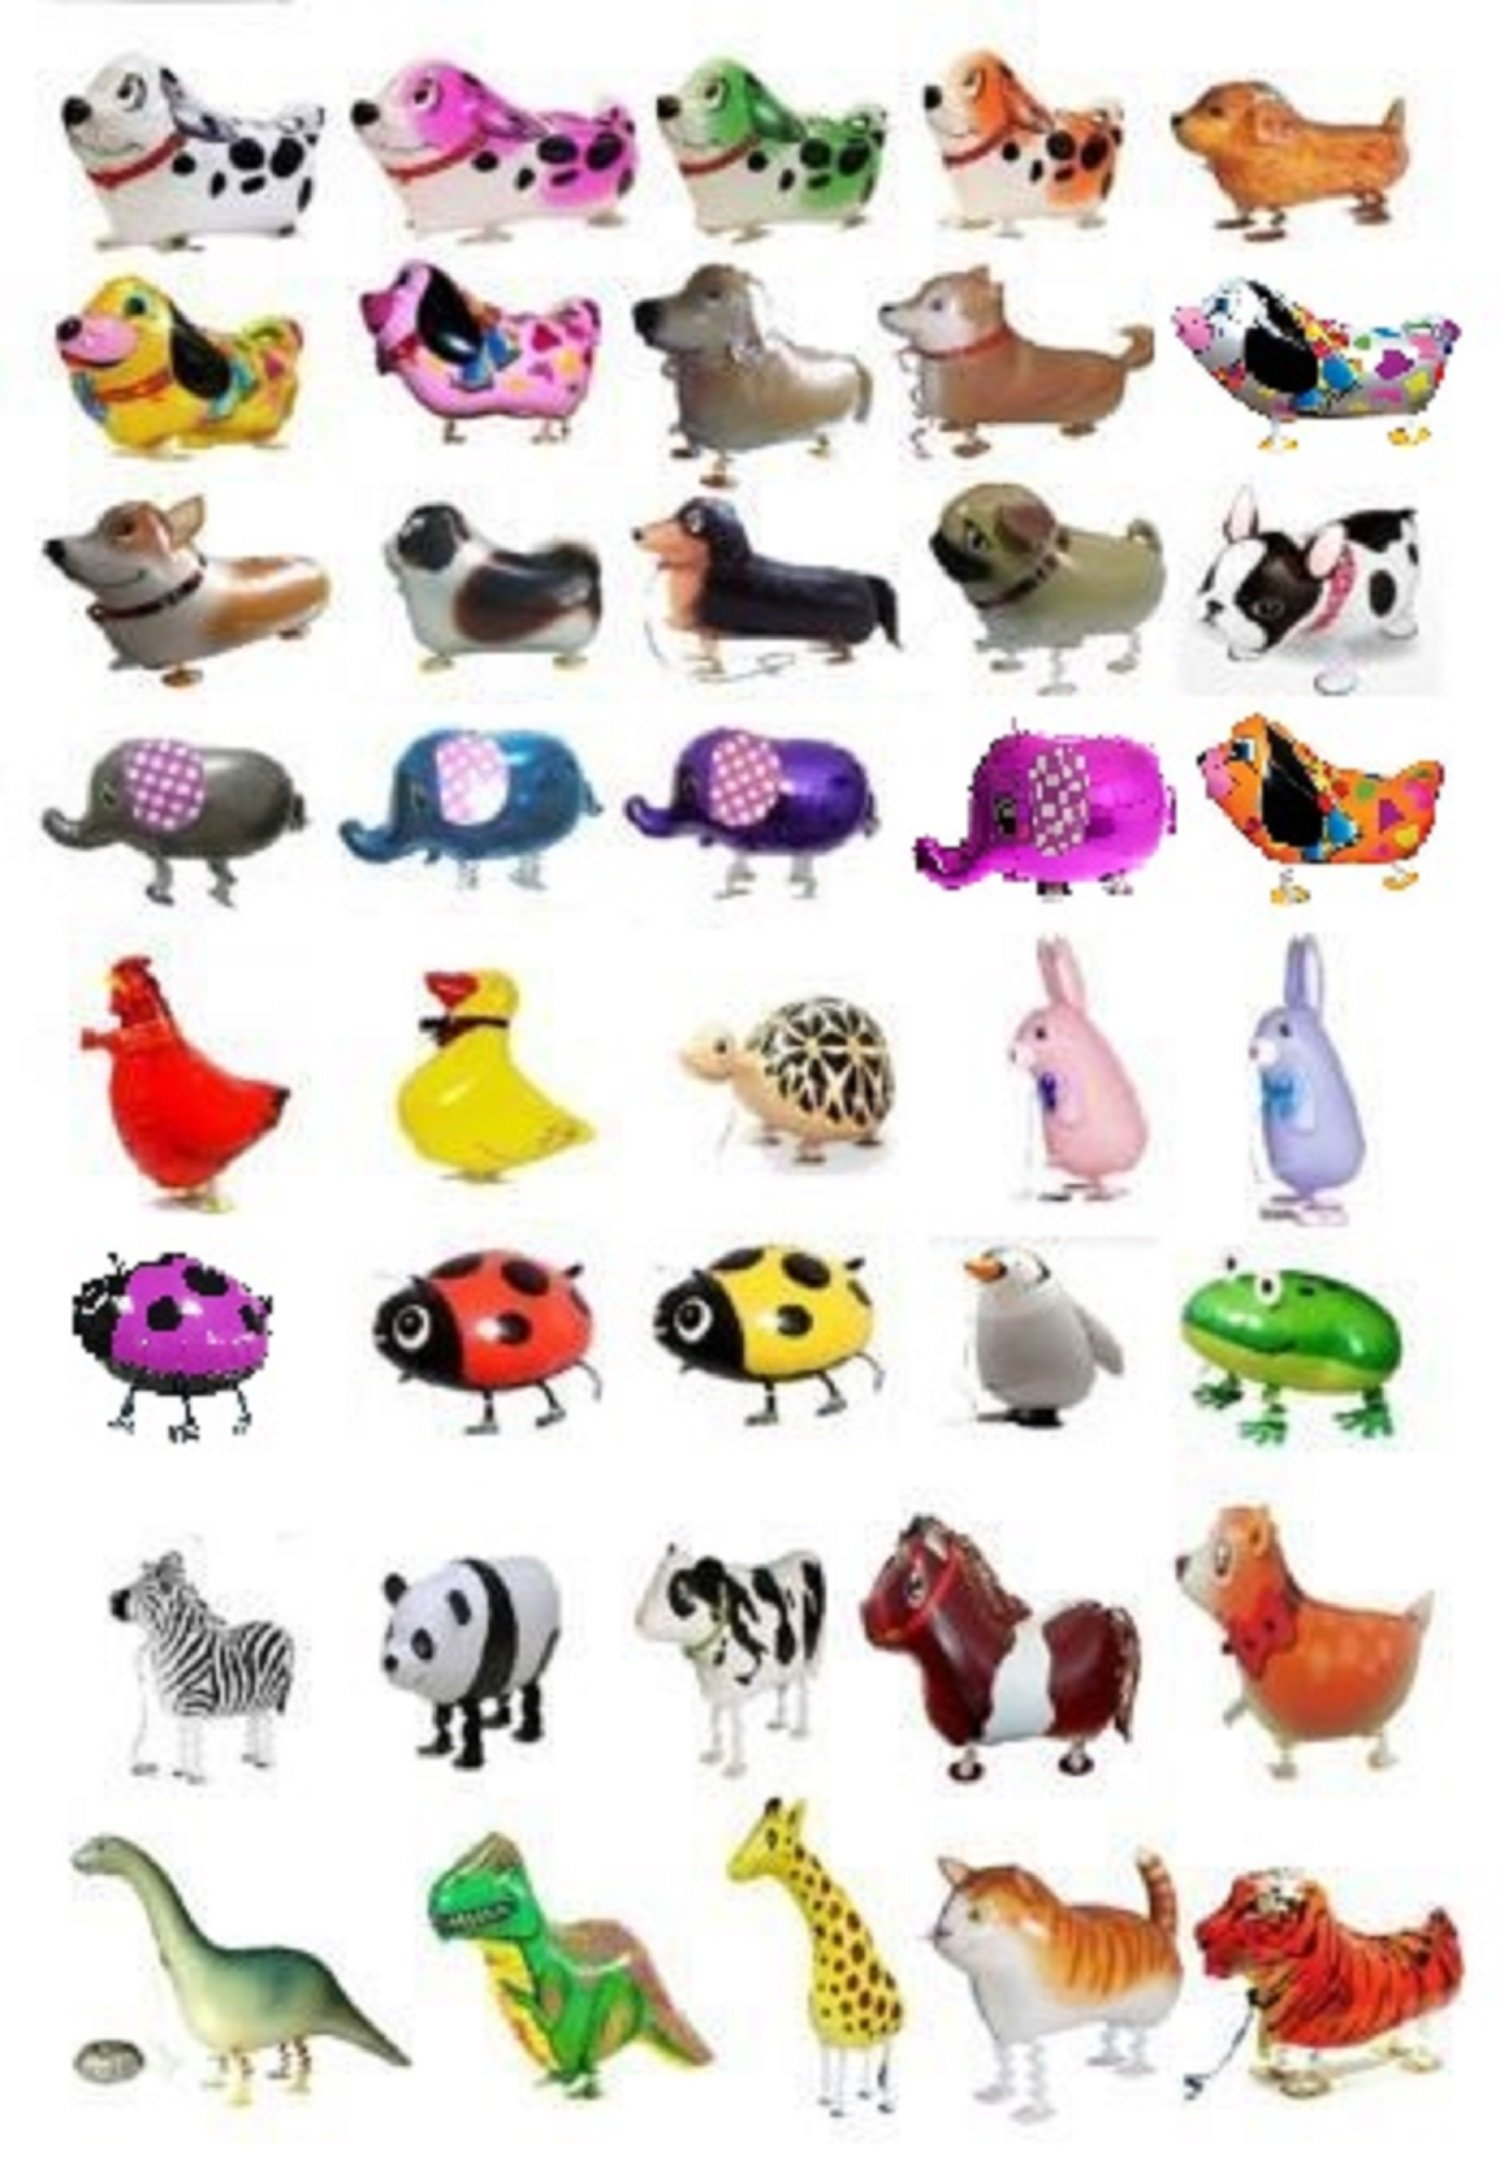 SET OF 200 WALKING ANIMAL BALLOON PETS AIR WALKERS, MIXED by MY BALLOON STORE